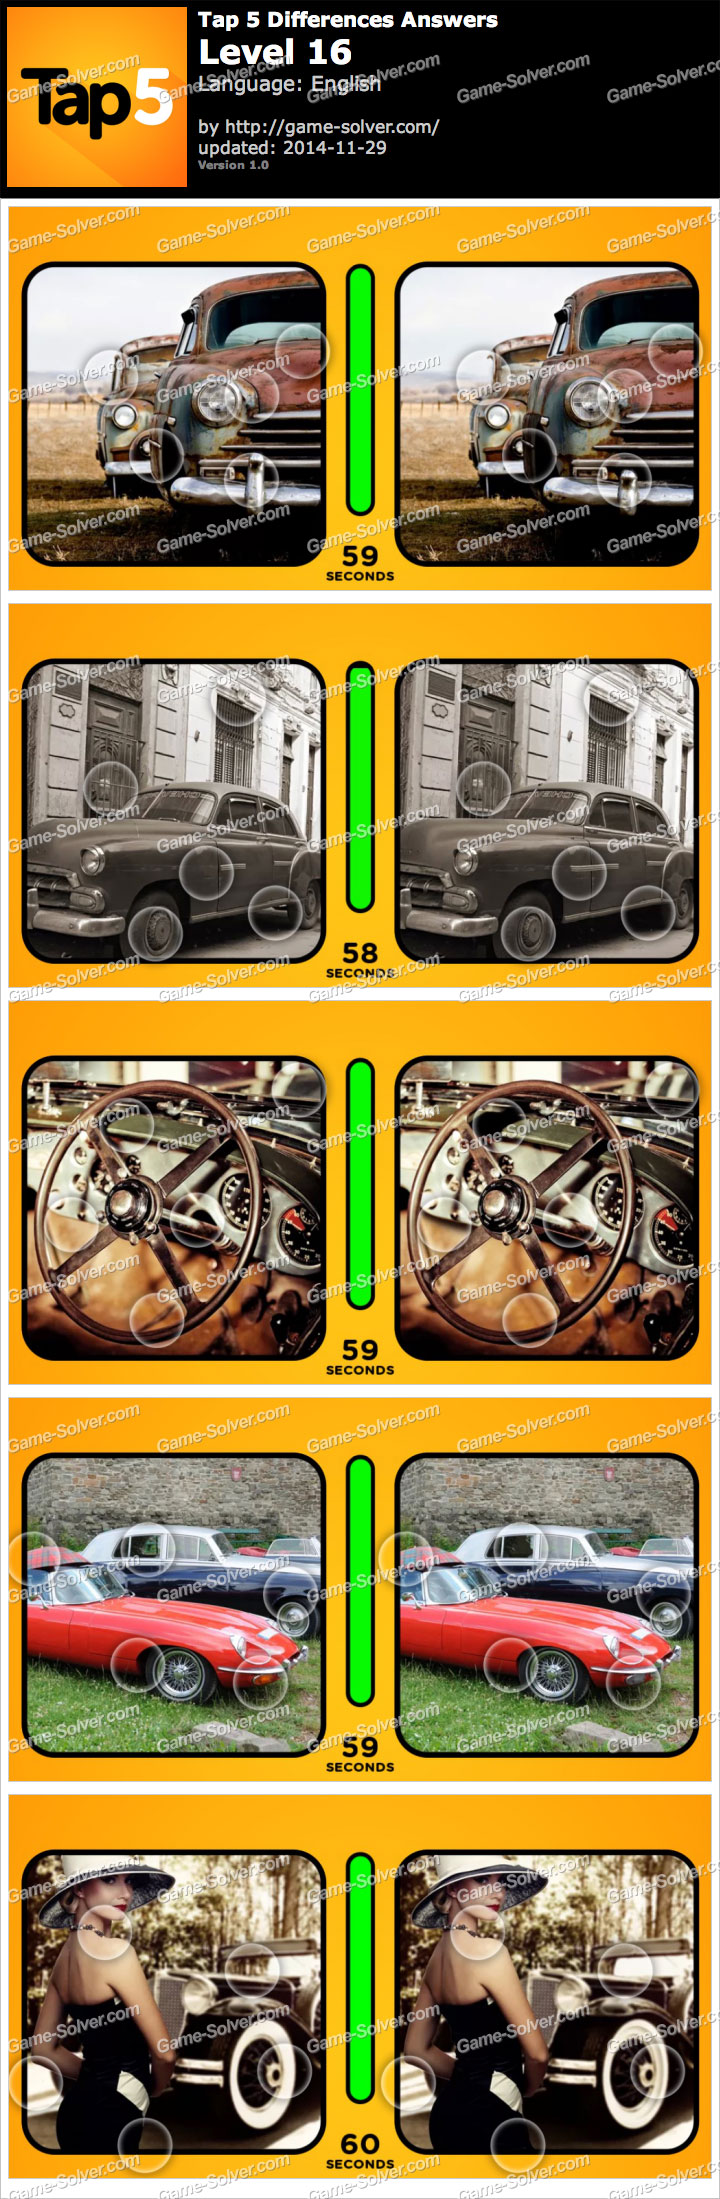 Tap 5 Differences Level 16